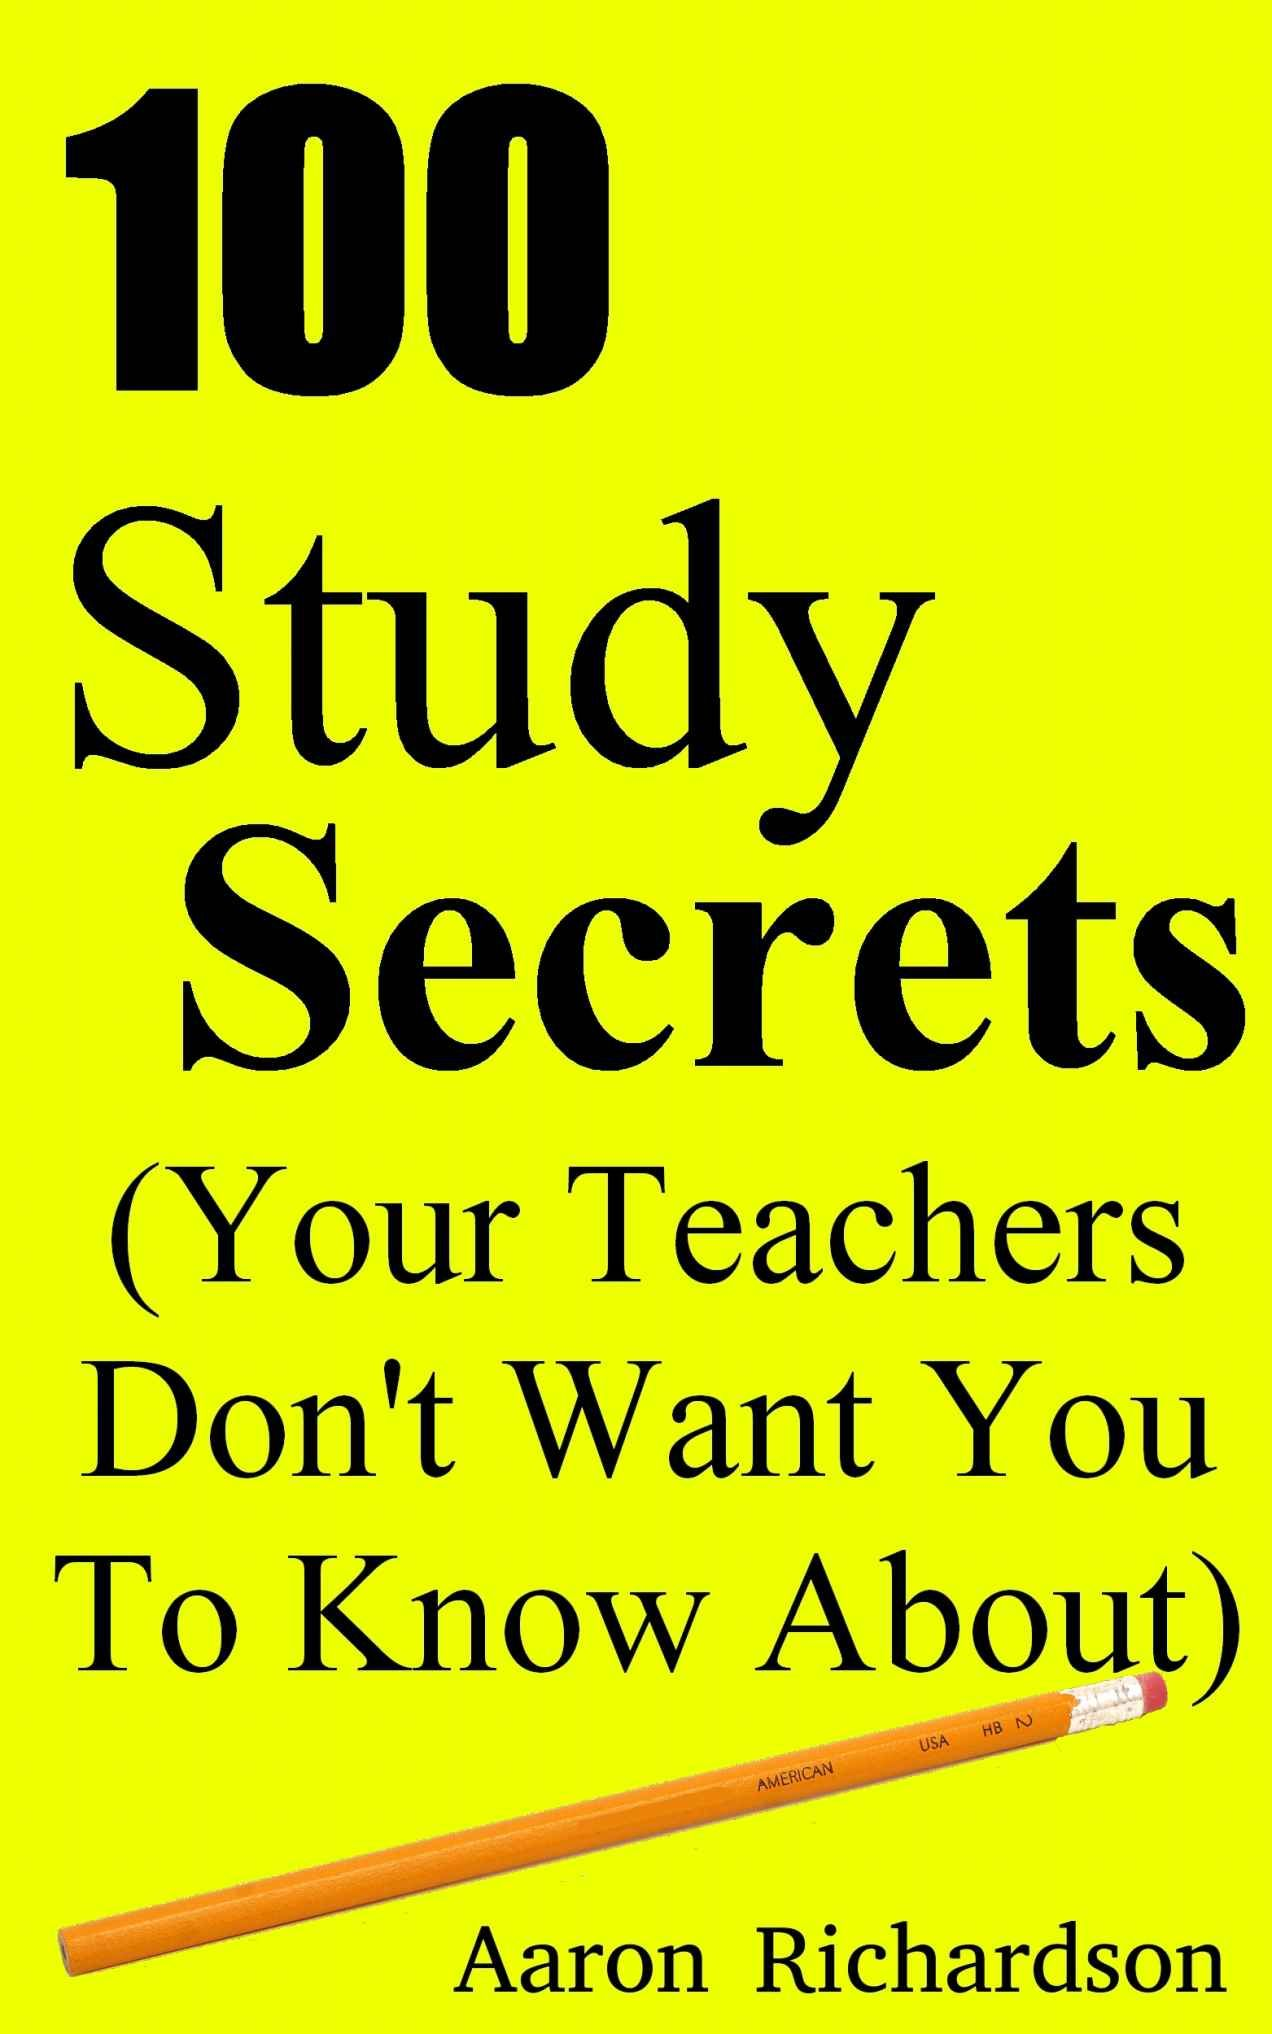 100 Study Secrets (Your Teachers Don't Want You To Know About)